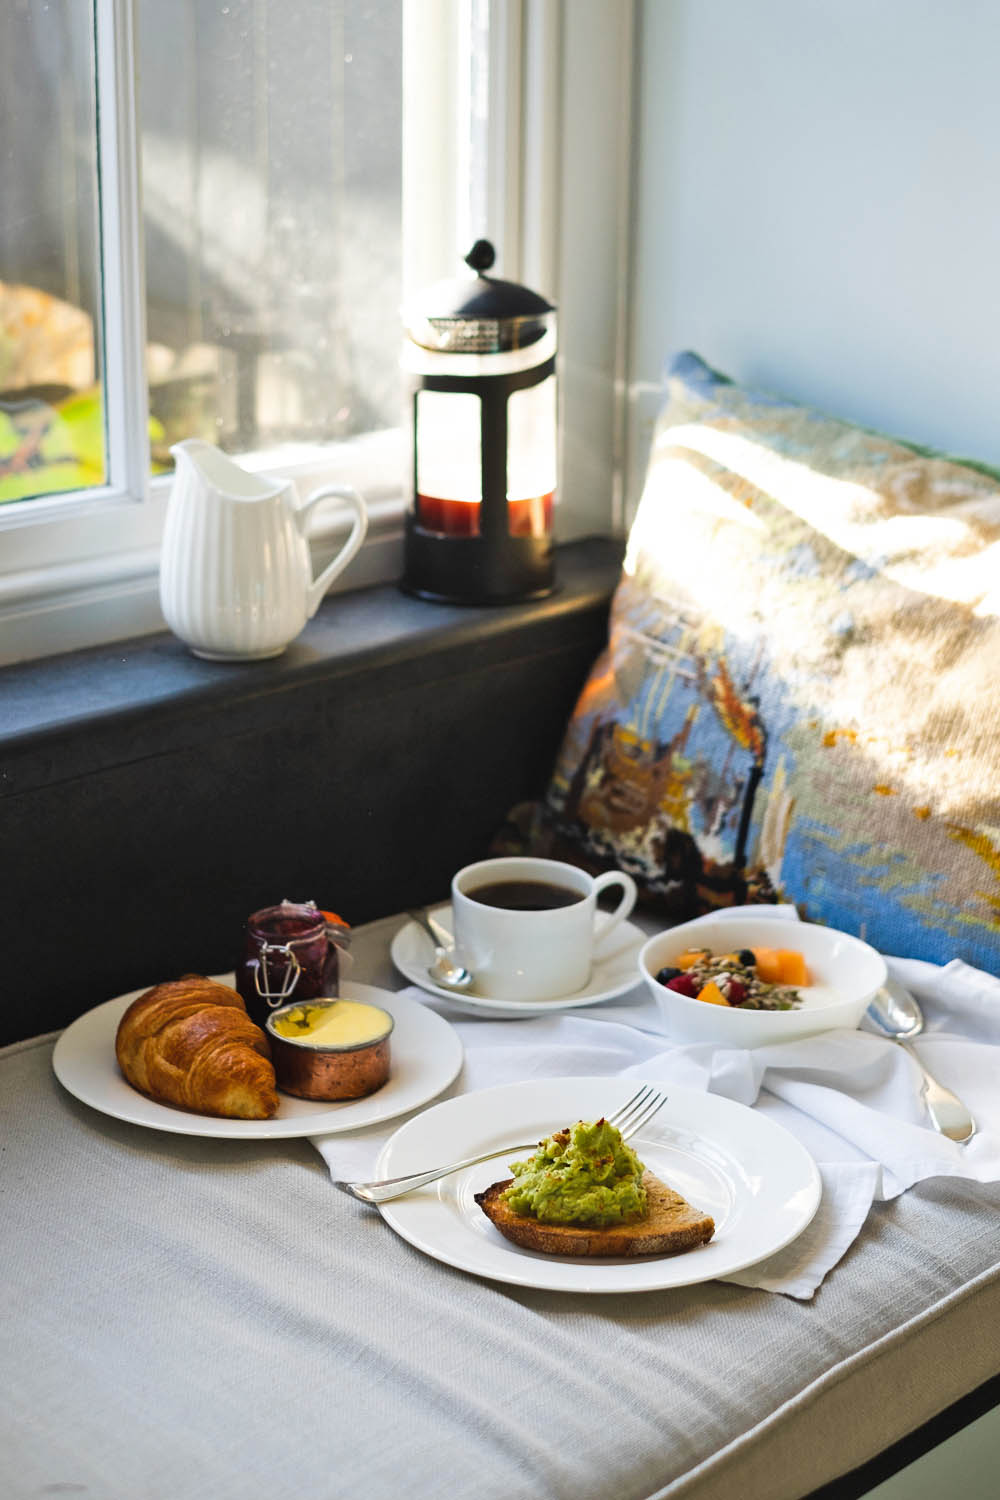 Breakfast at the Chapel House in Penzance | A 5-day guide to beautiful Cornwall by Mondomulia